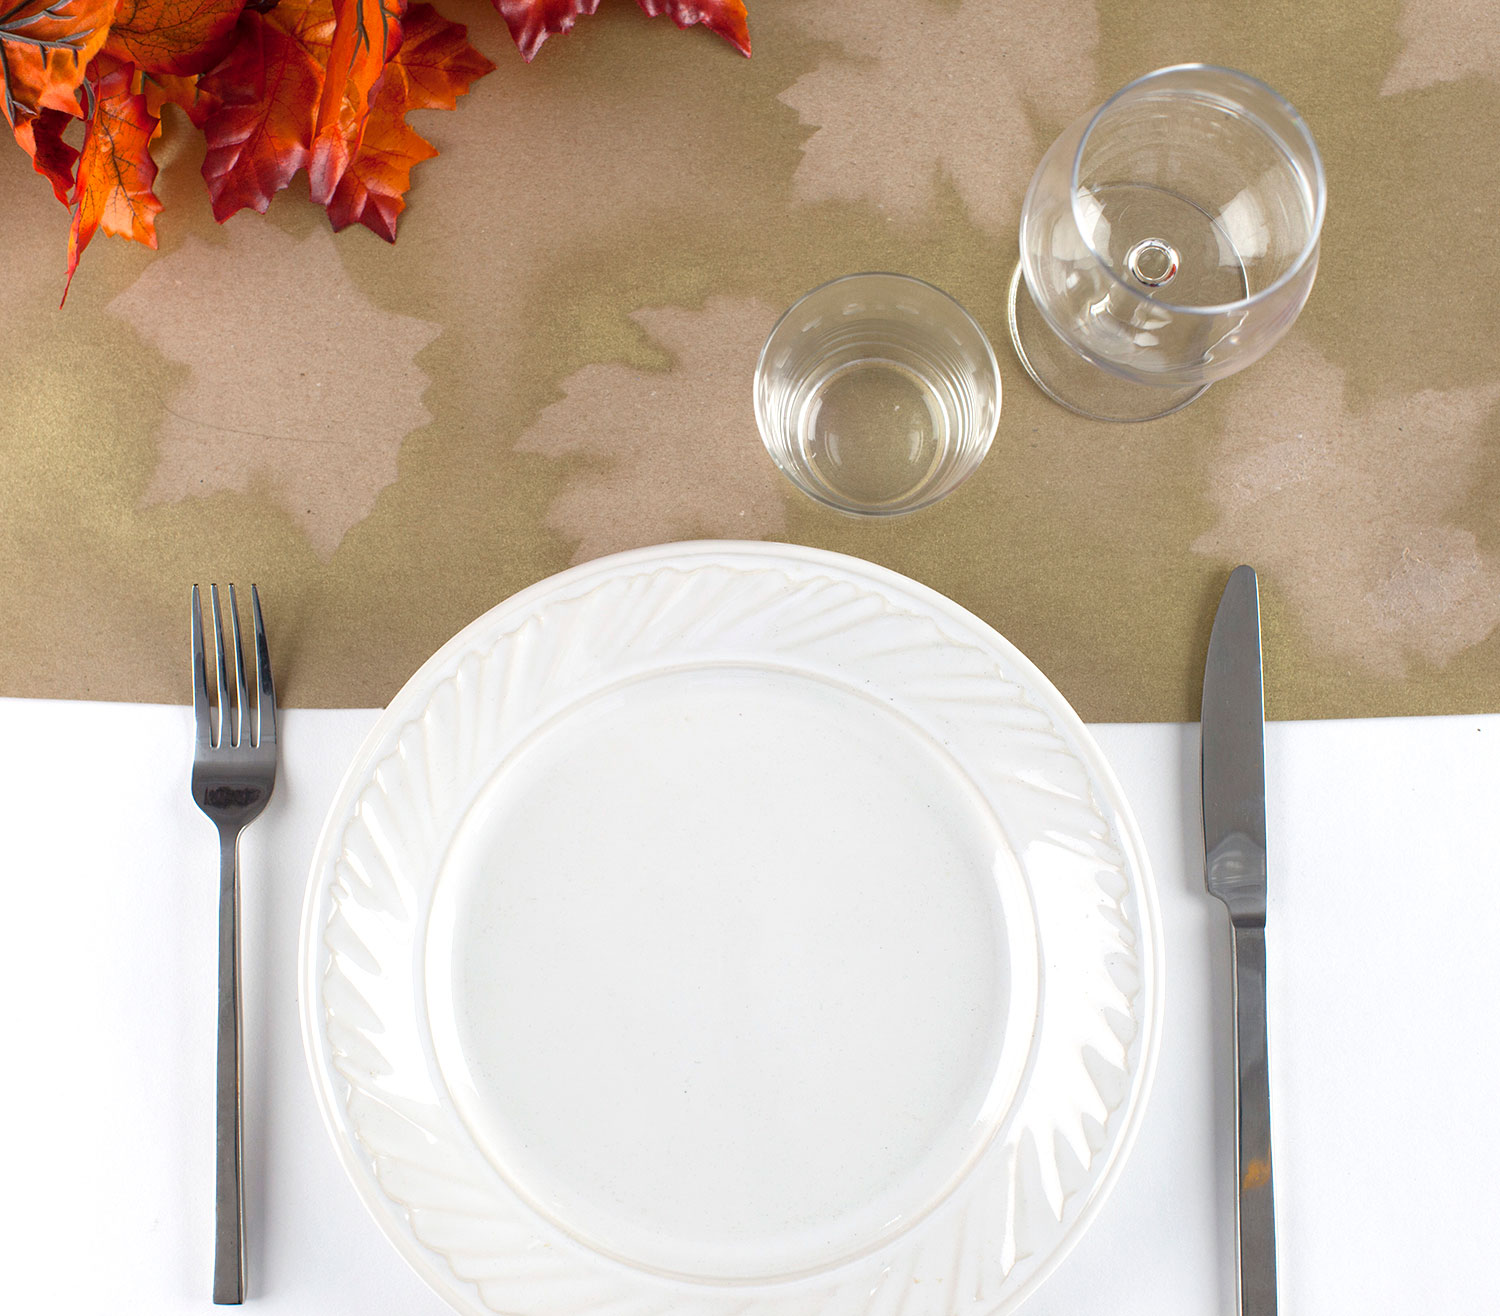 Thanksgiving crafts, ideas - Butcher Paper Table Runner